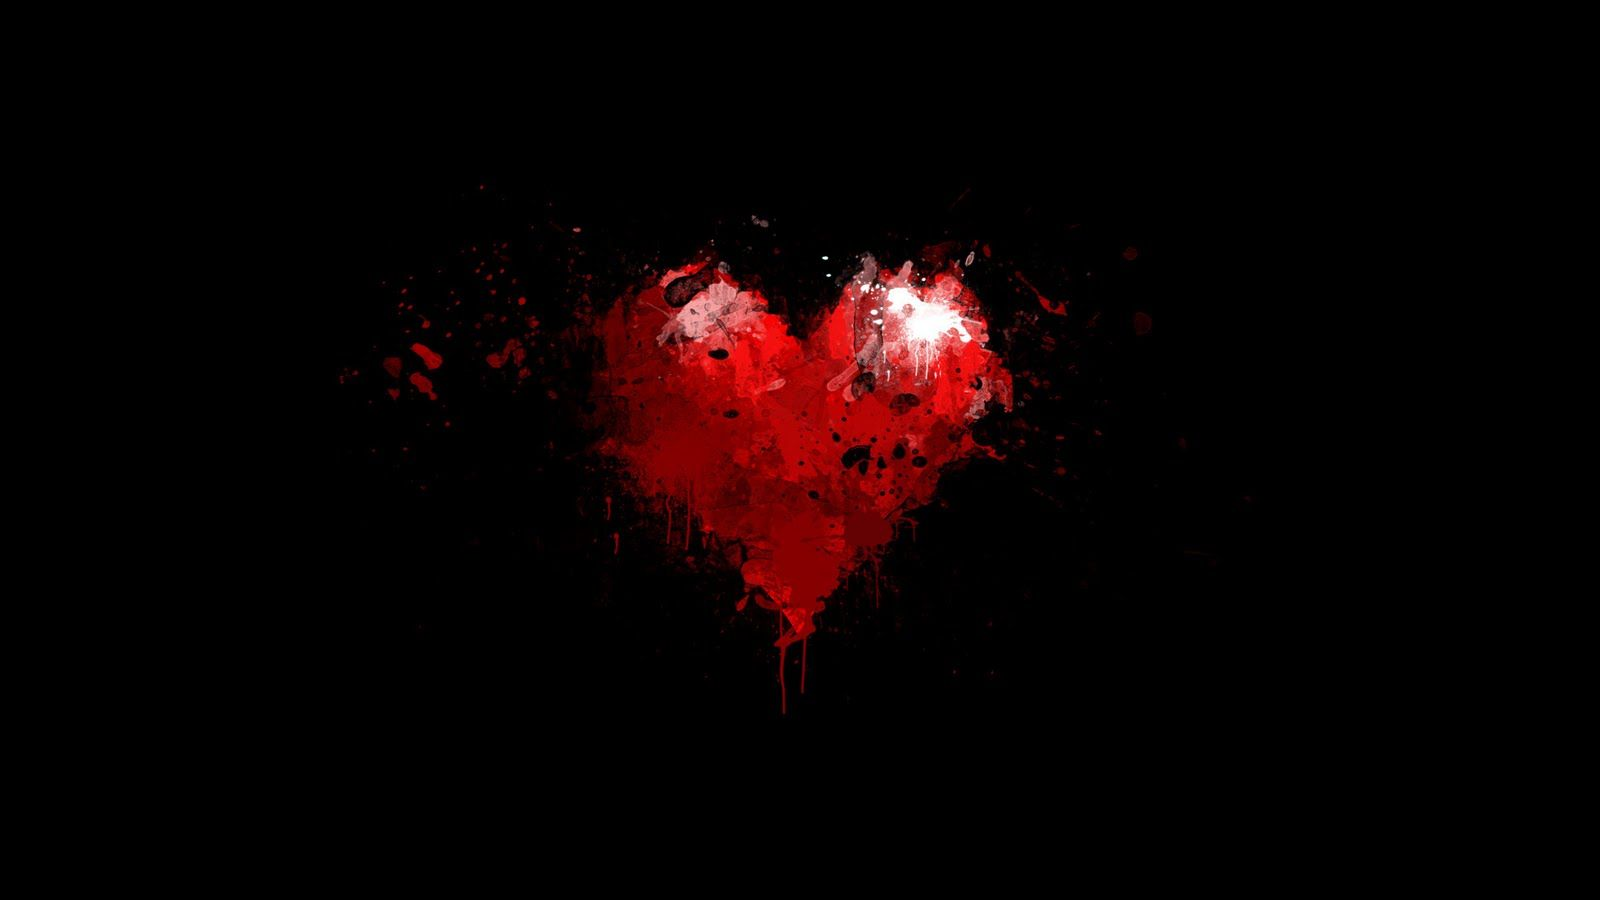 3d red and black backgrounds romantic wallpapers hd wallpapers heart wallpaper love wallpapers 4u